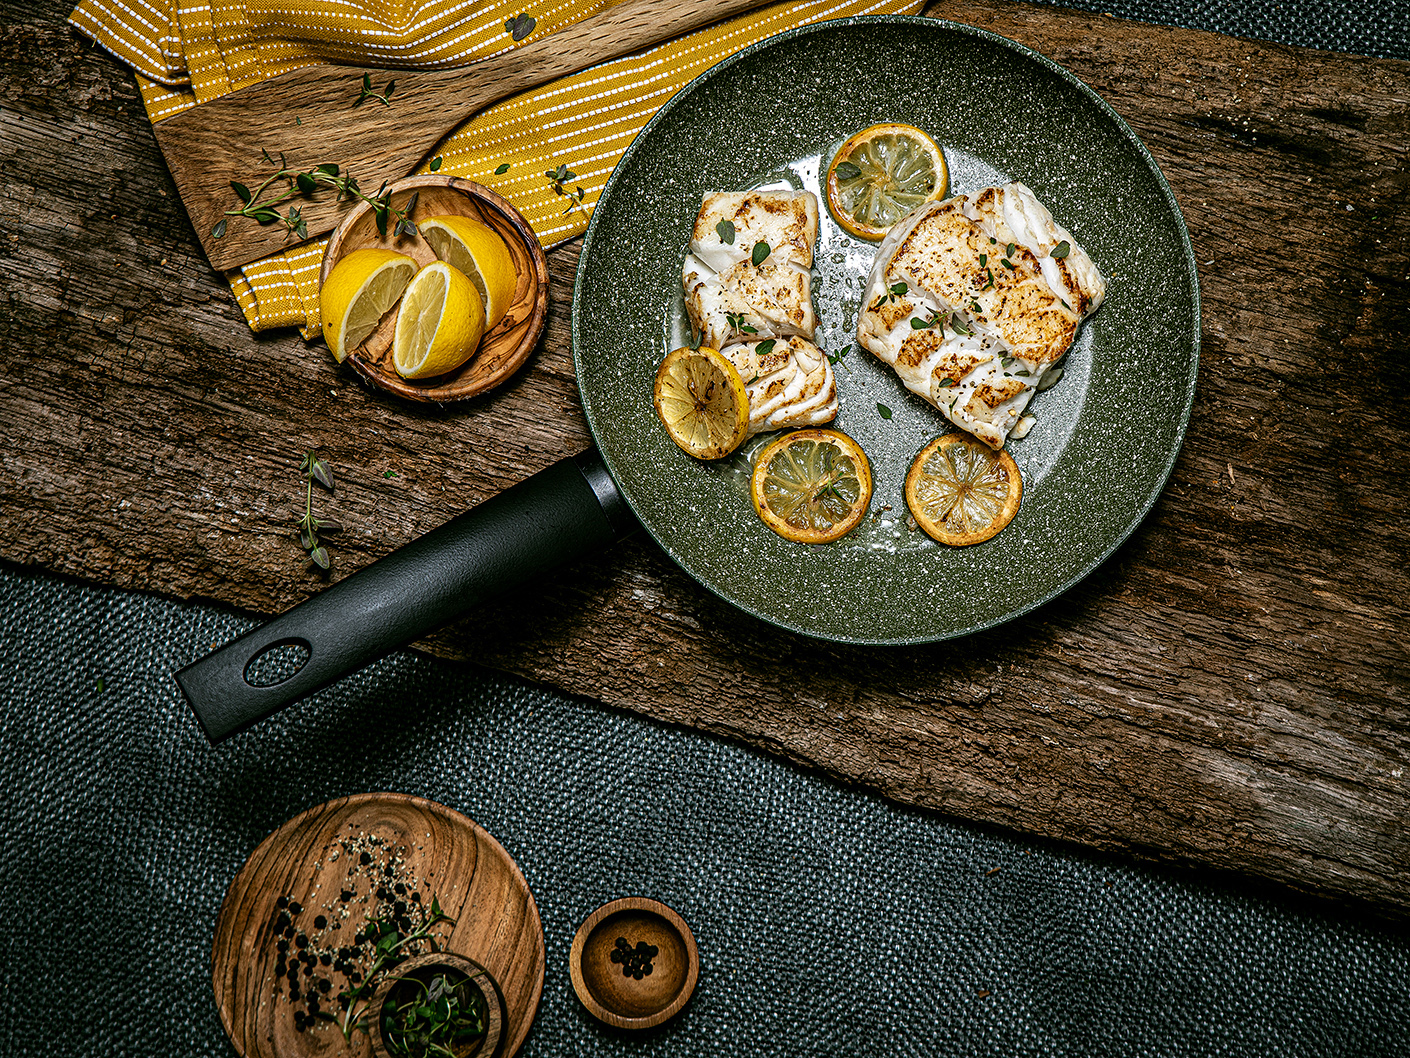 food-and-product-photography-shot-on-location-in-wirral-cheshire